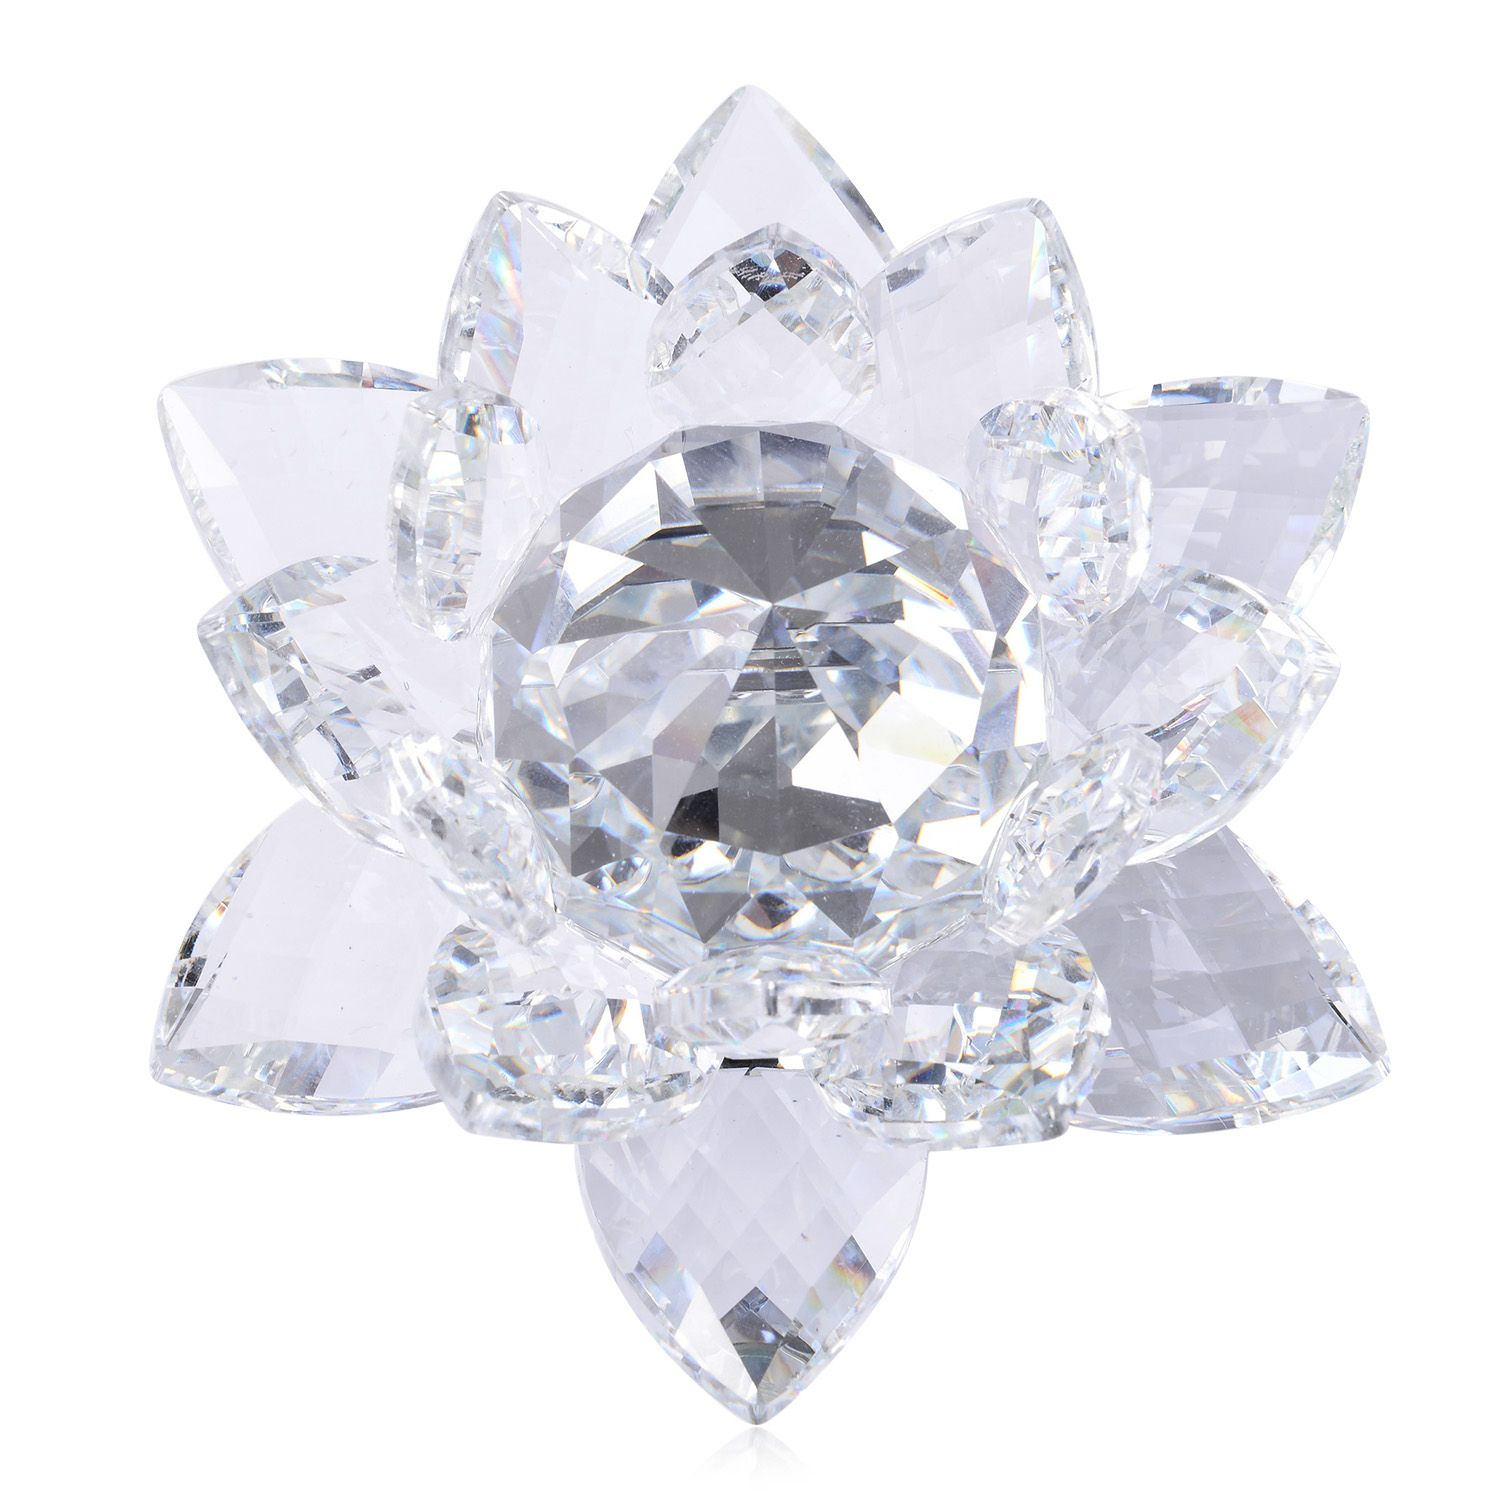 Home decorative crystal lotus flower tgw cts Crystal home decor